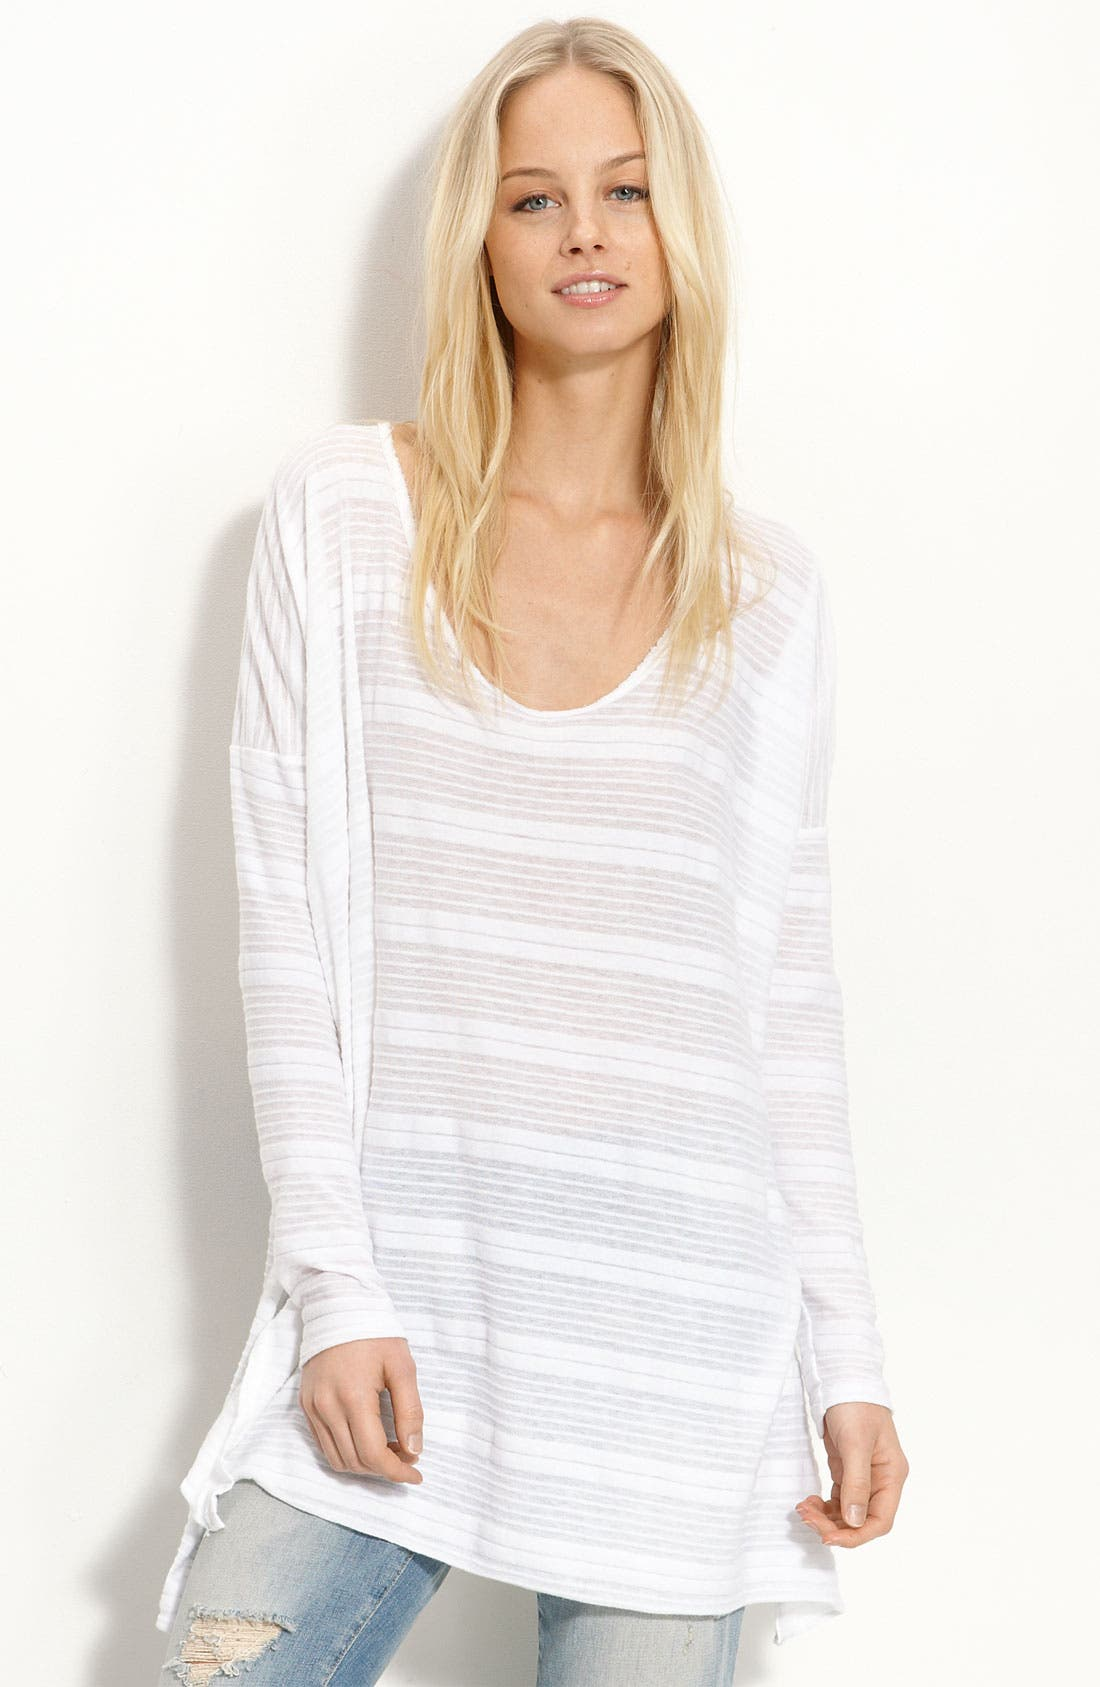 FREE PEOPLE, 'Solid Jammy Jam' Long Sleeve Tee, Main thumbnail 1, color, 100